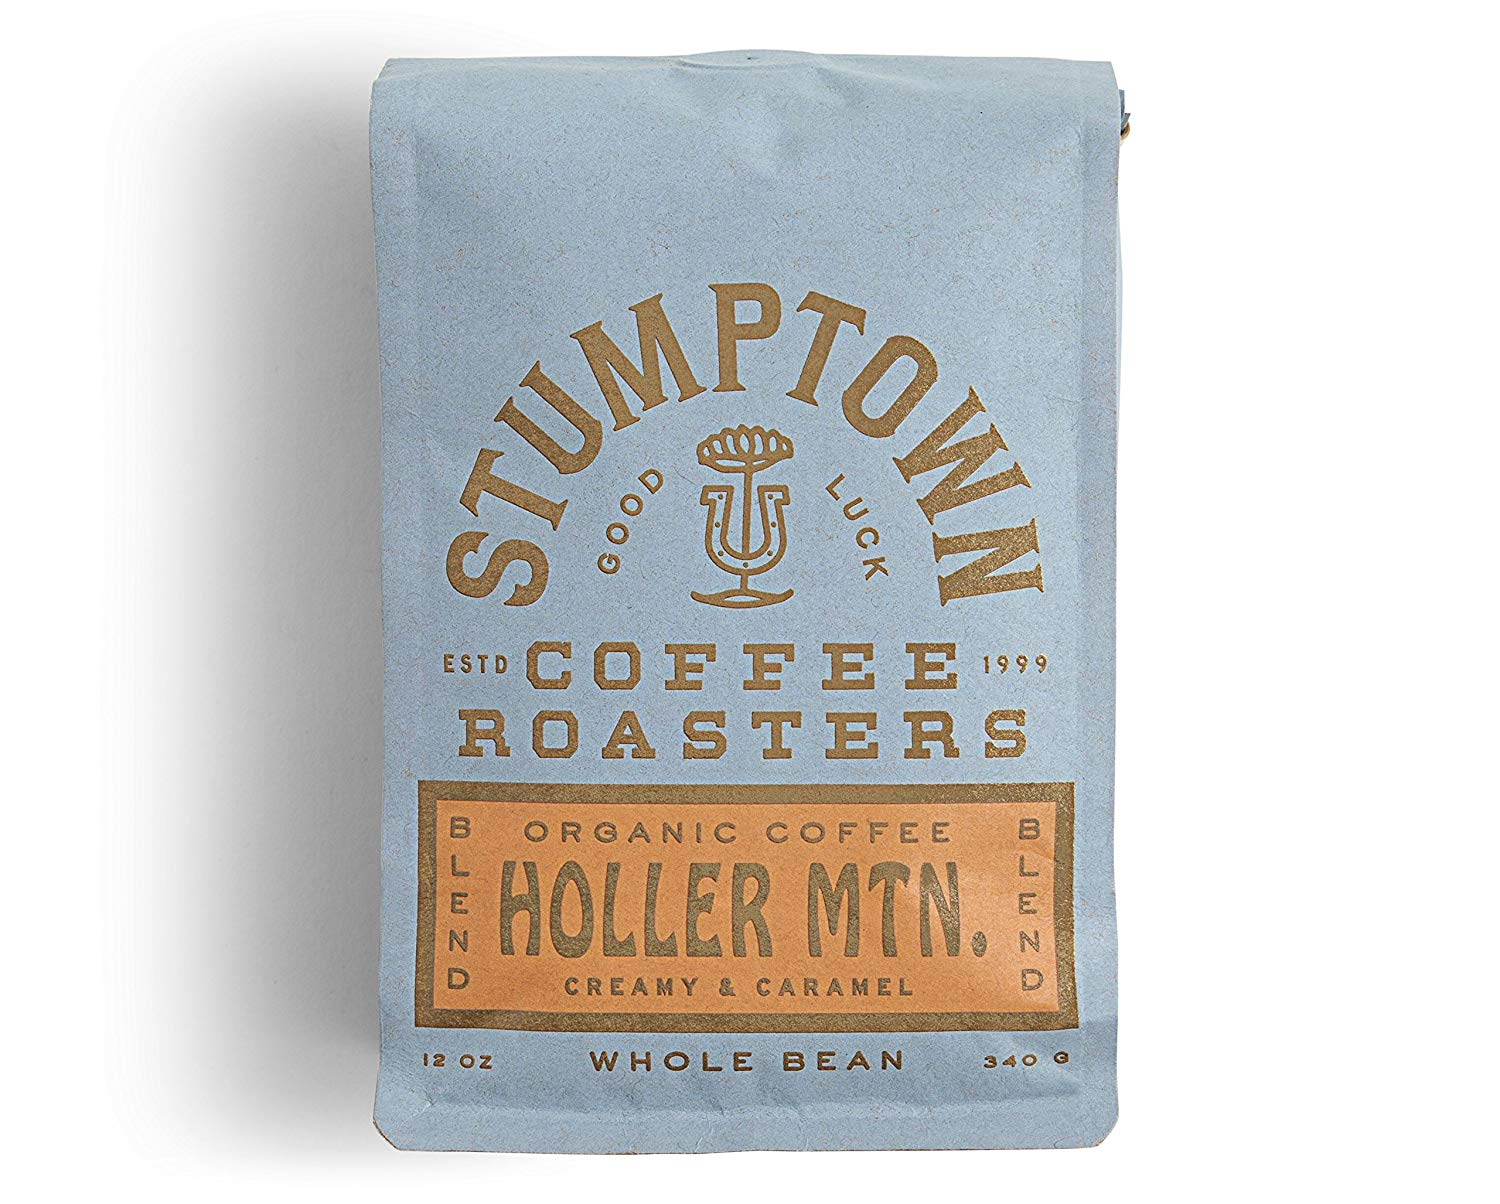 Stumptown Coffee Roasters, Whole Bean Organic Coffee, Holler Mountain, 12 Ounce. Full-Bodied Signaure Blend, Latin American African Coffee Blend, Perfect for Espresso, Drip or French Press Brewing